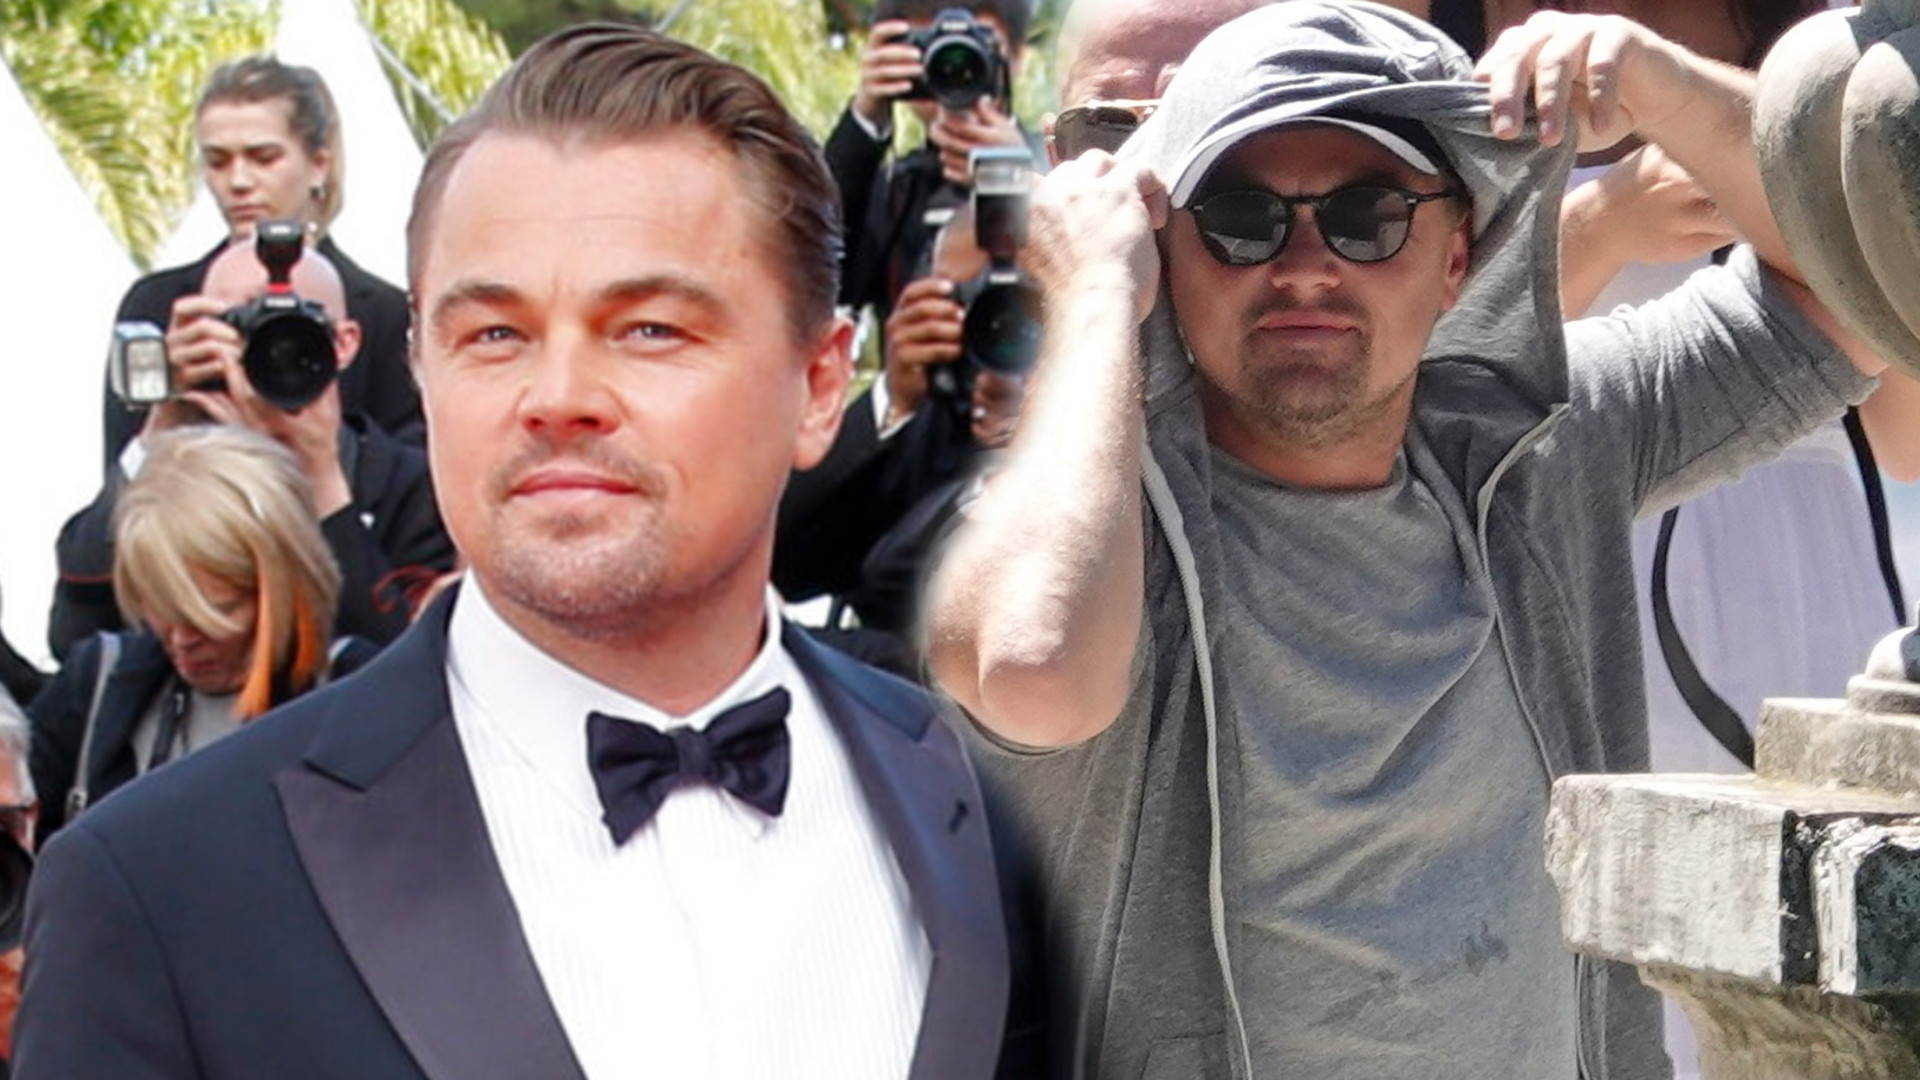 Leonardo DiCaprio z dziewczyną Camilą Morrone rywalizują grając w siatkówką plażową